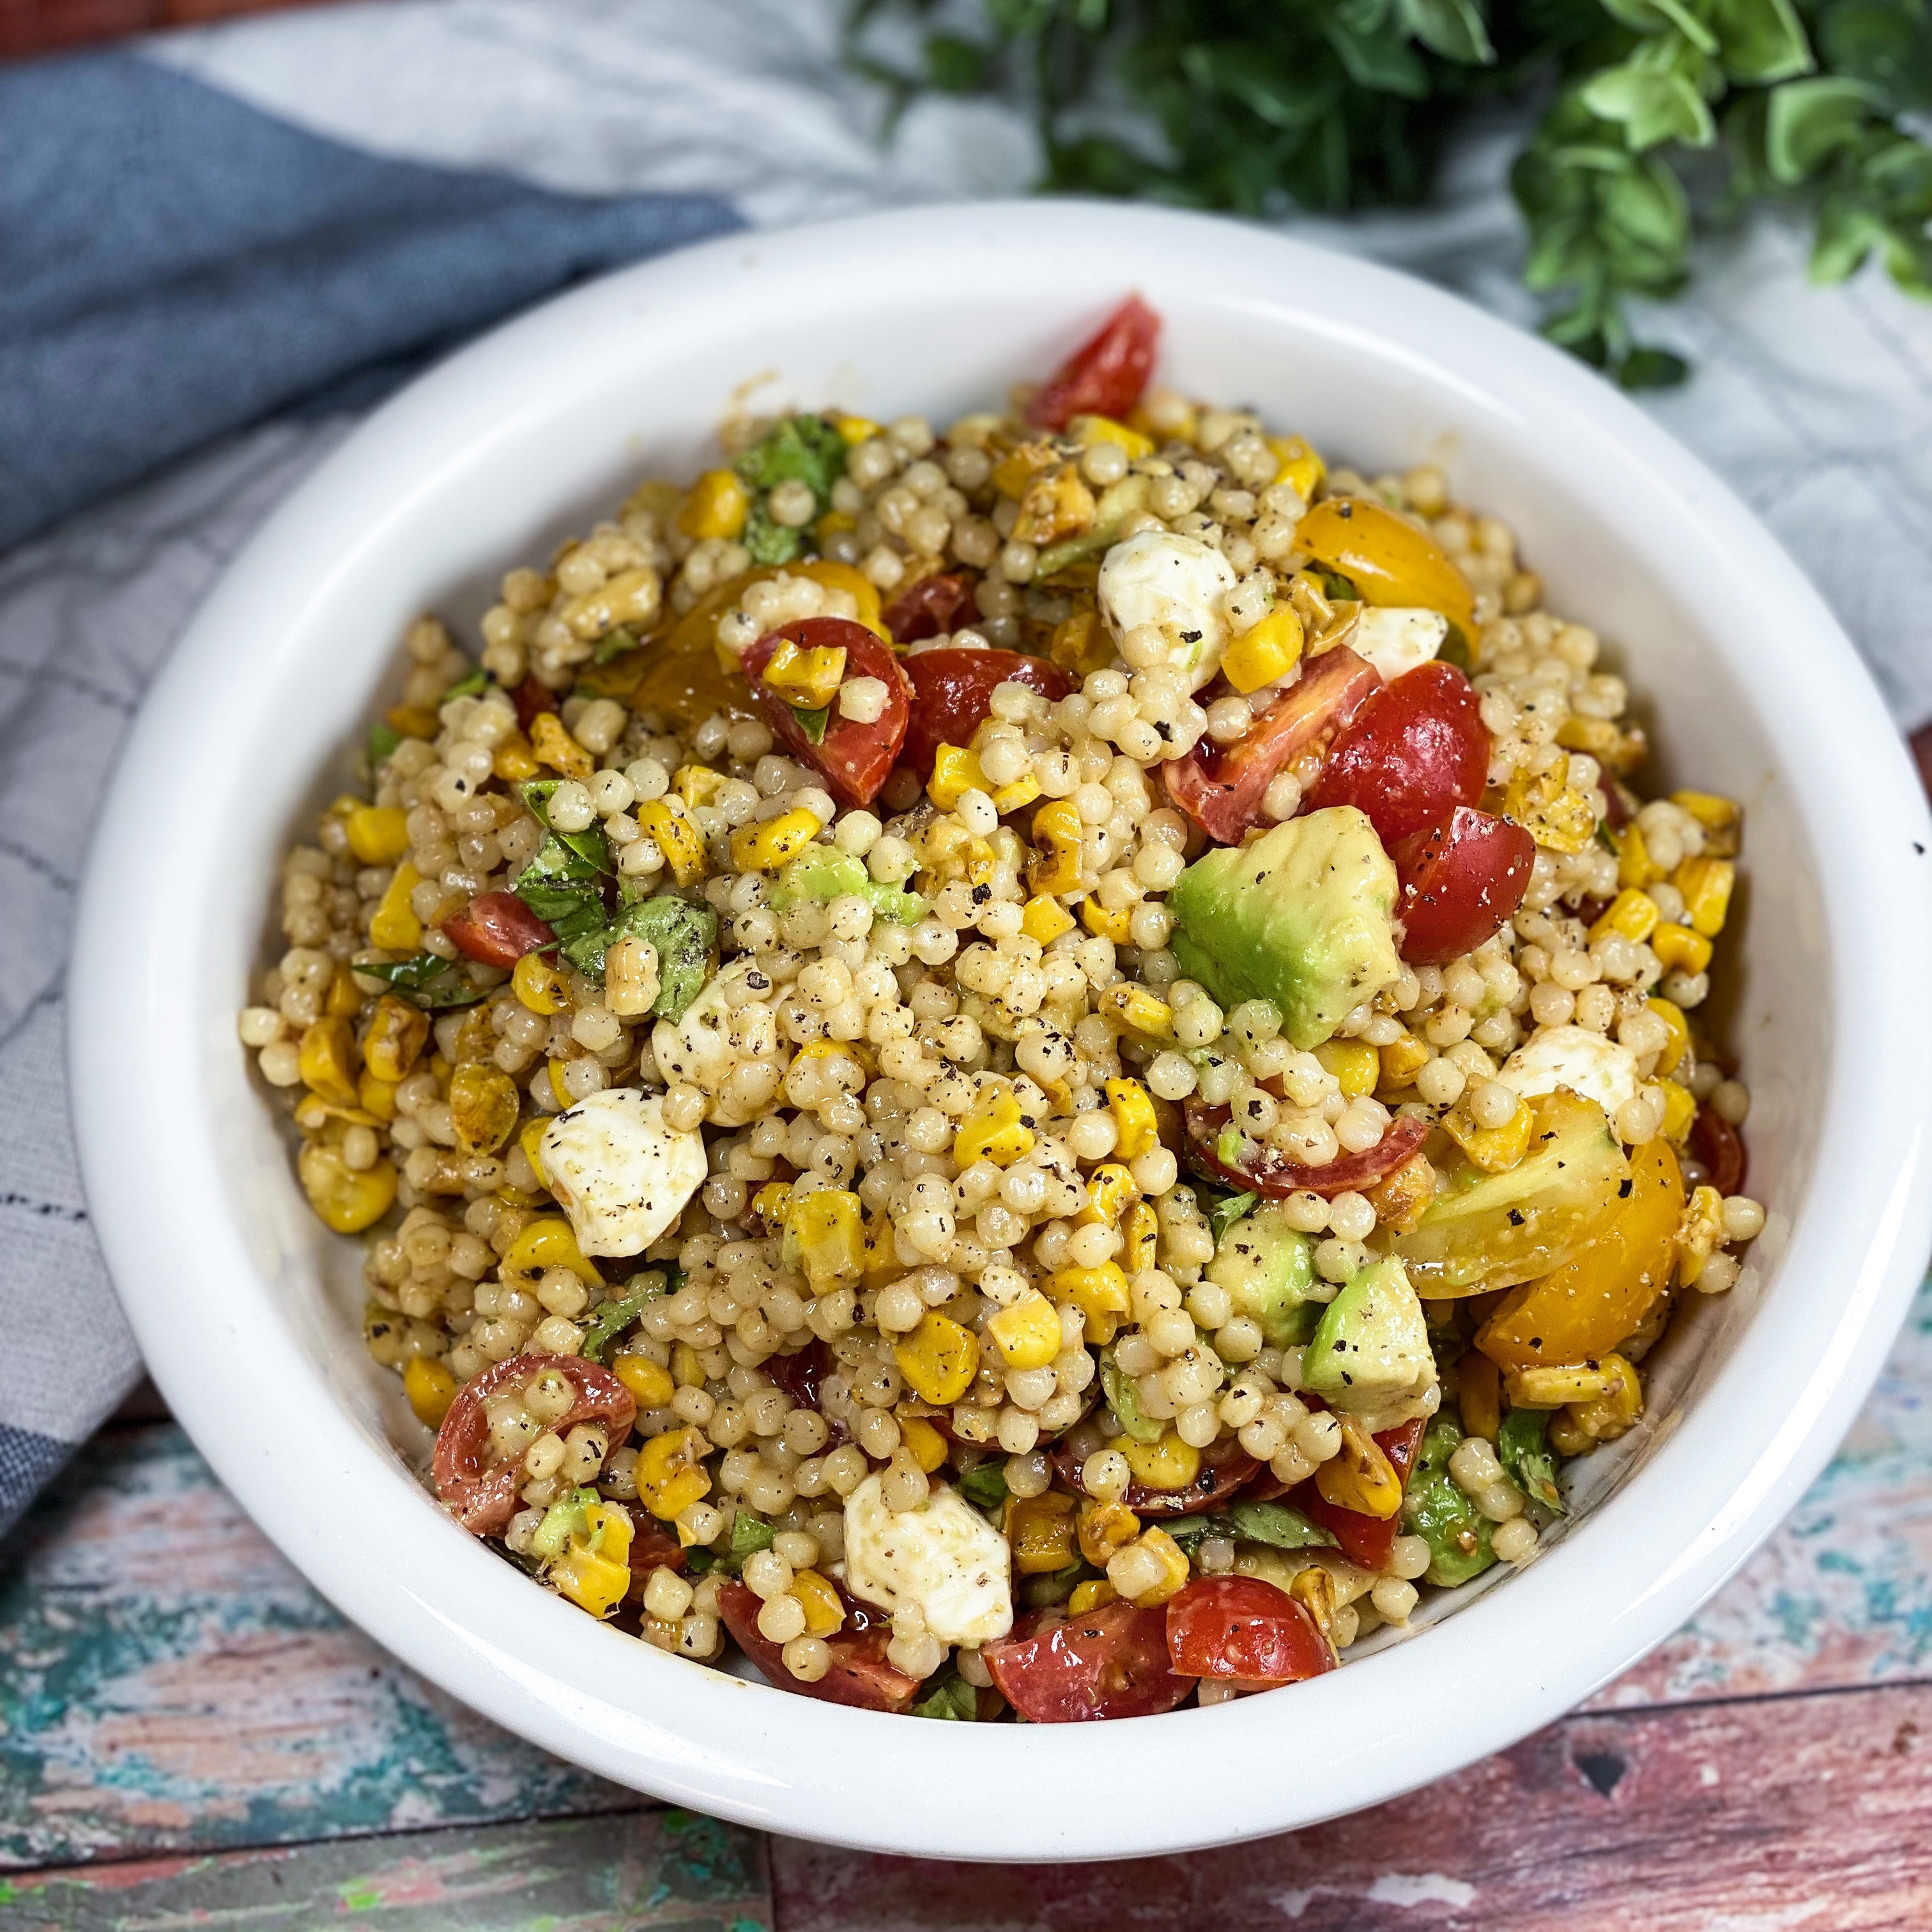 Couscous Charred Corn Salad With Avocados, Tomatoes And Mozzarella